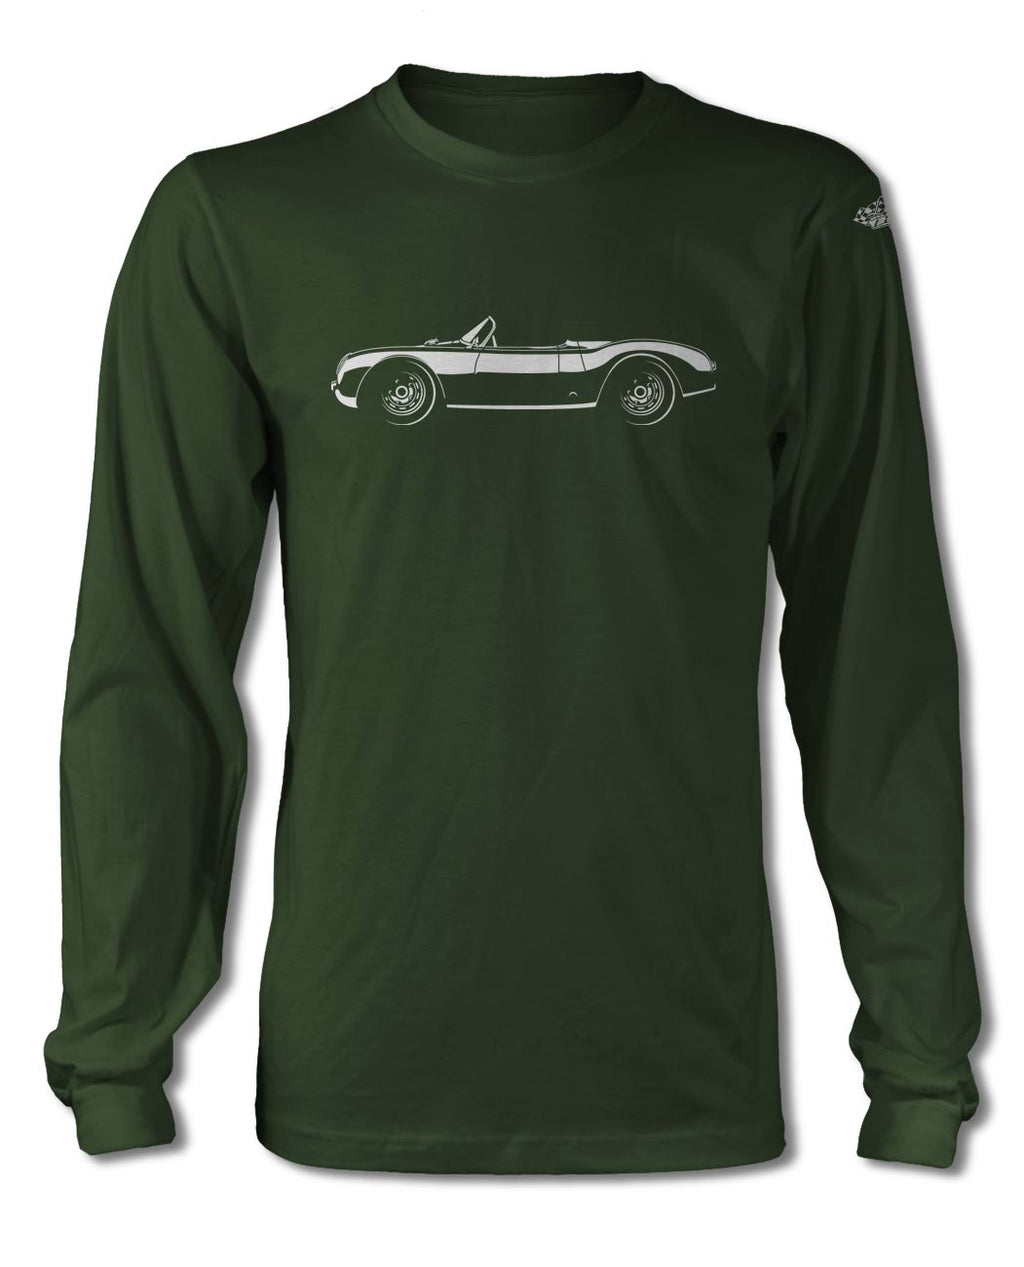 Porsche 550 Spyder T-Shirt - Long Sleeves - Side View